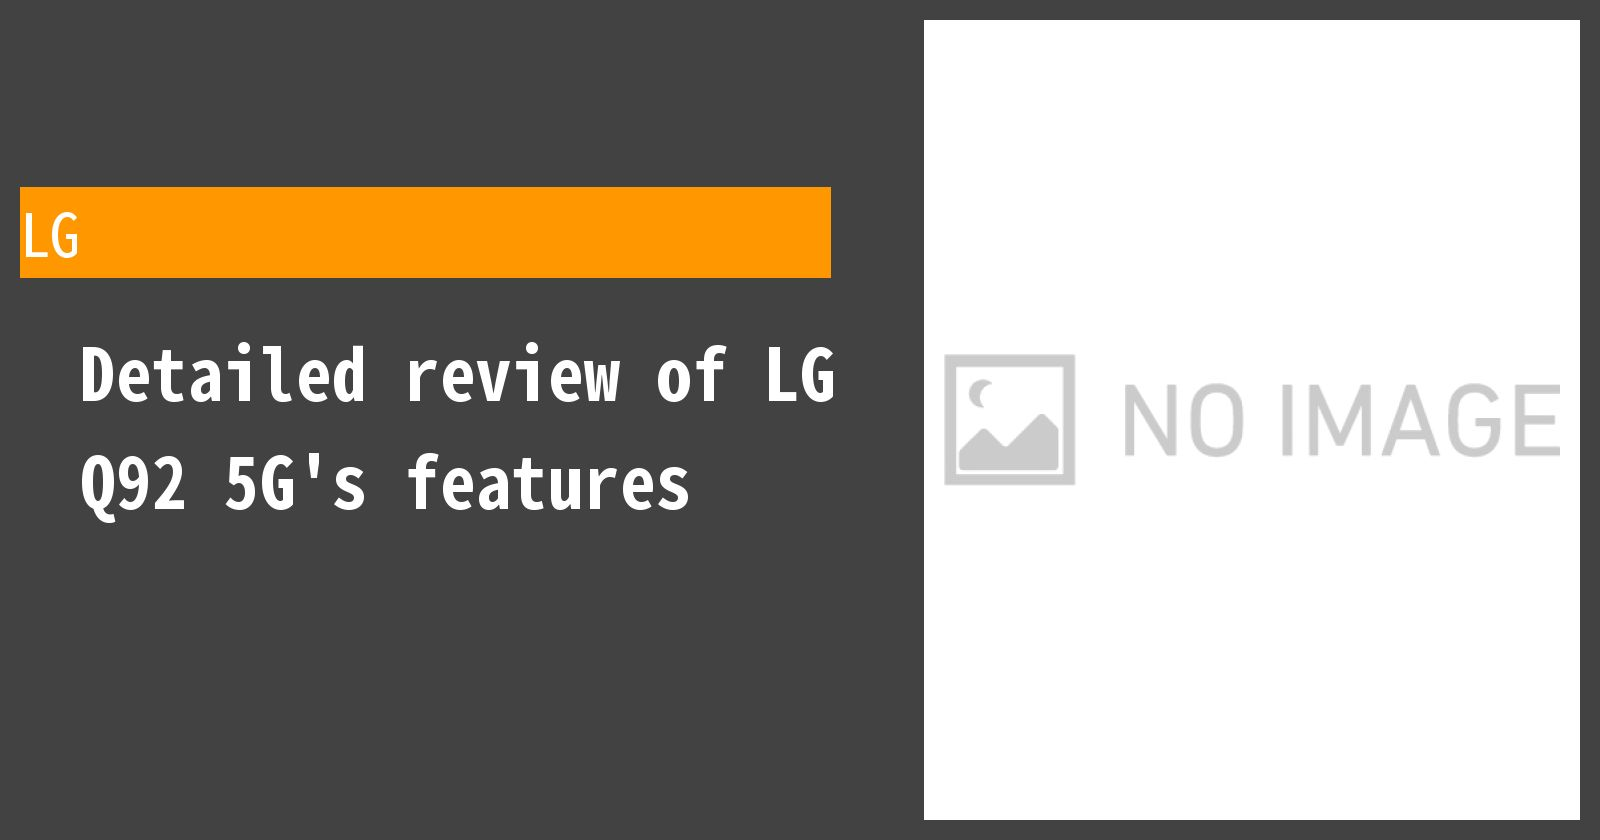 Detailed review of LG Q92 5G's features